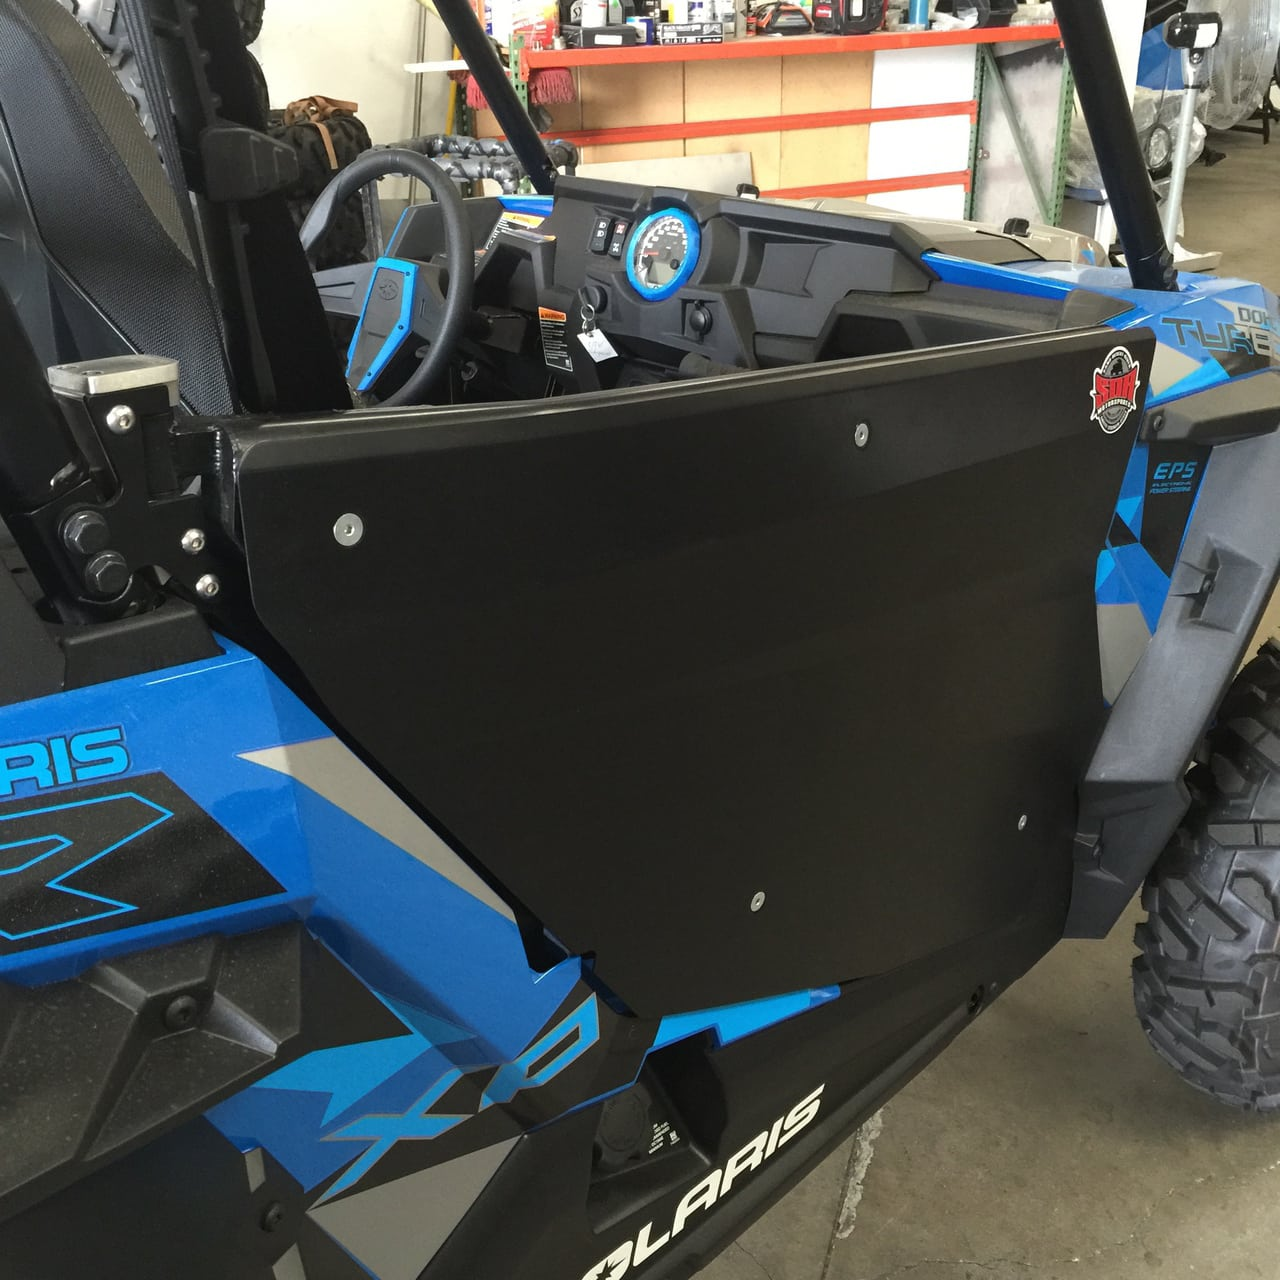 hight resolution of sdr motorsports door kit bolt on polaris rzr xp 1000 black